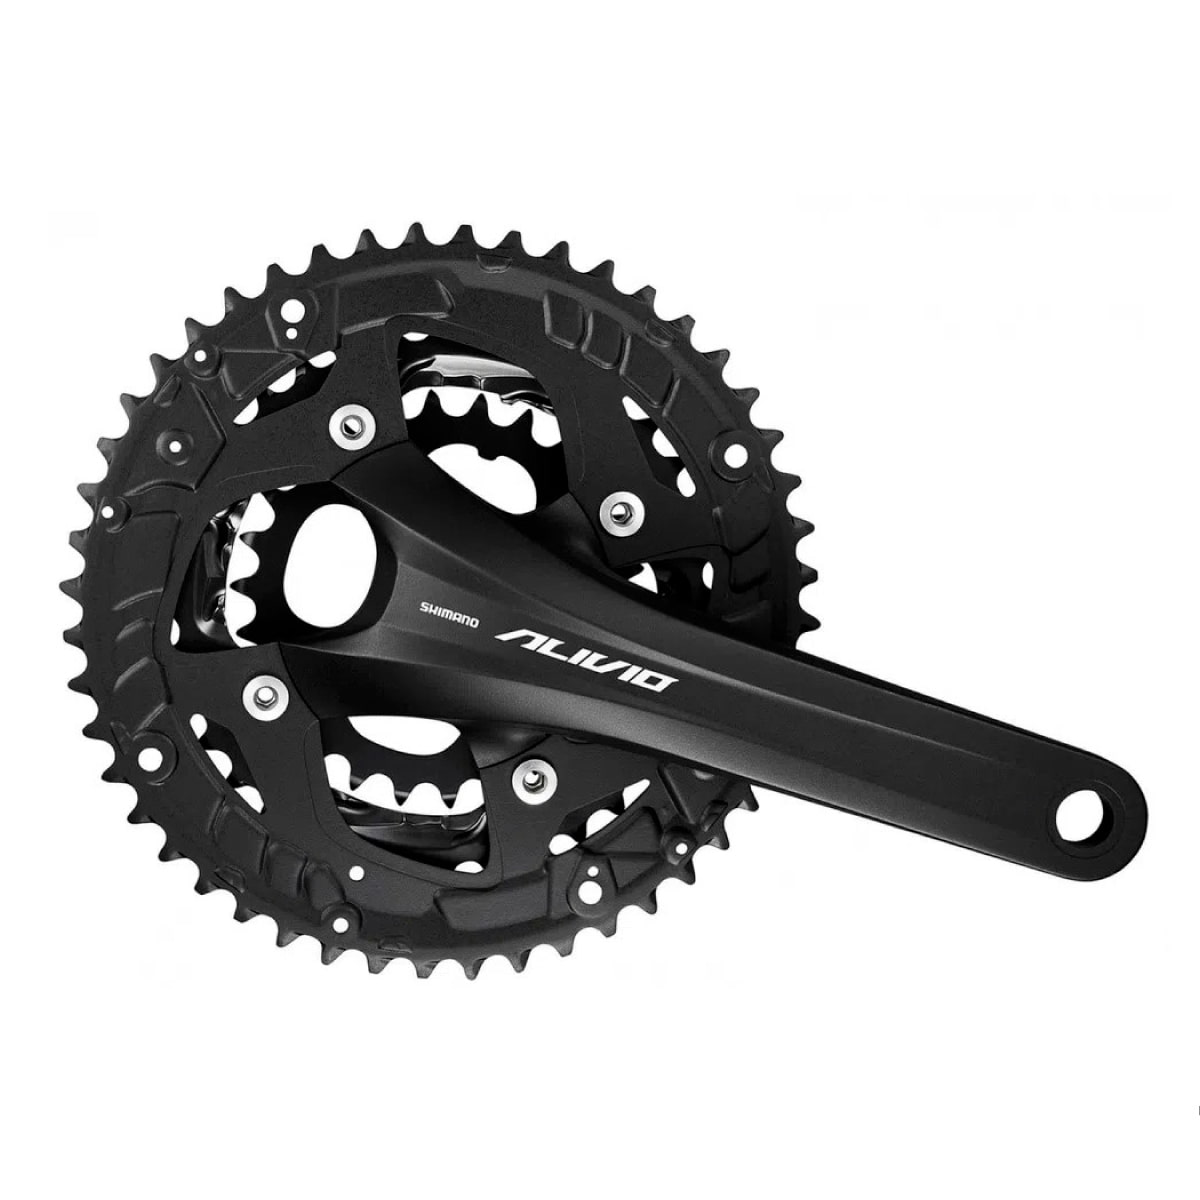 Pedivela Shimano Alivio Hollowtech 175mm